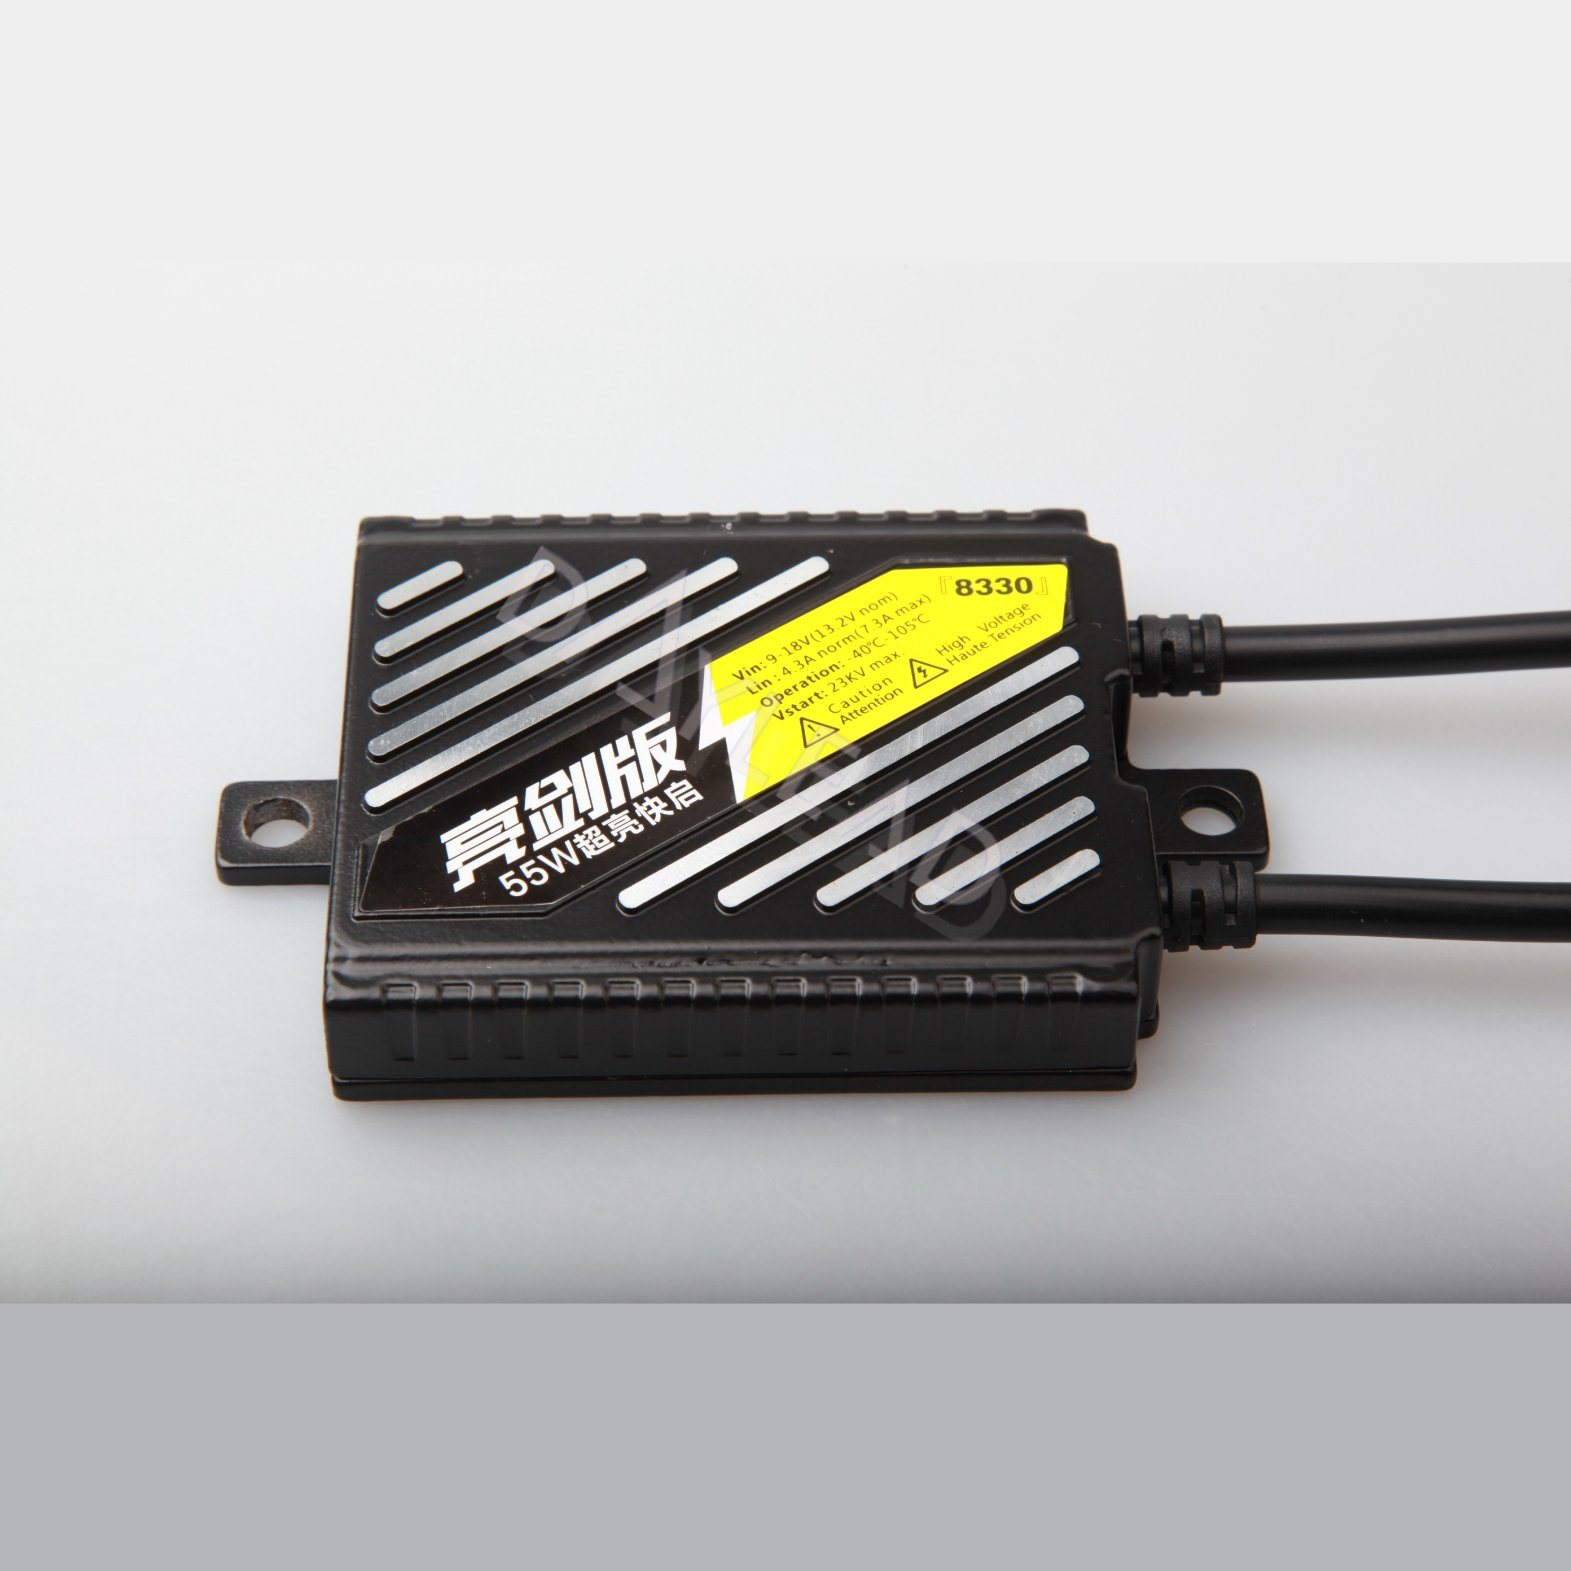 Made in China 55W HID Ballast Slim Xenon Ballast